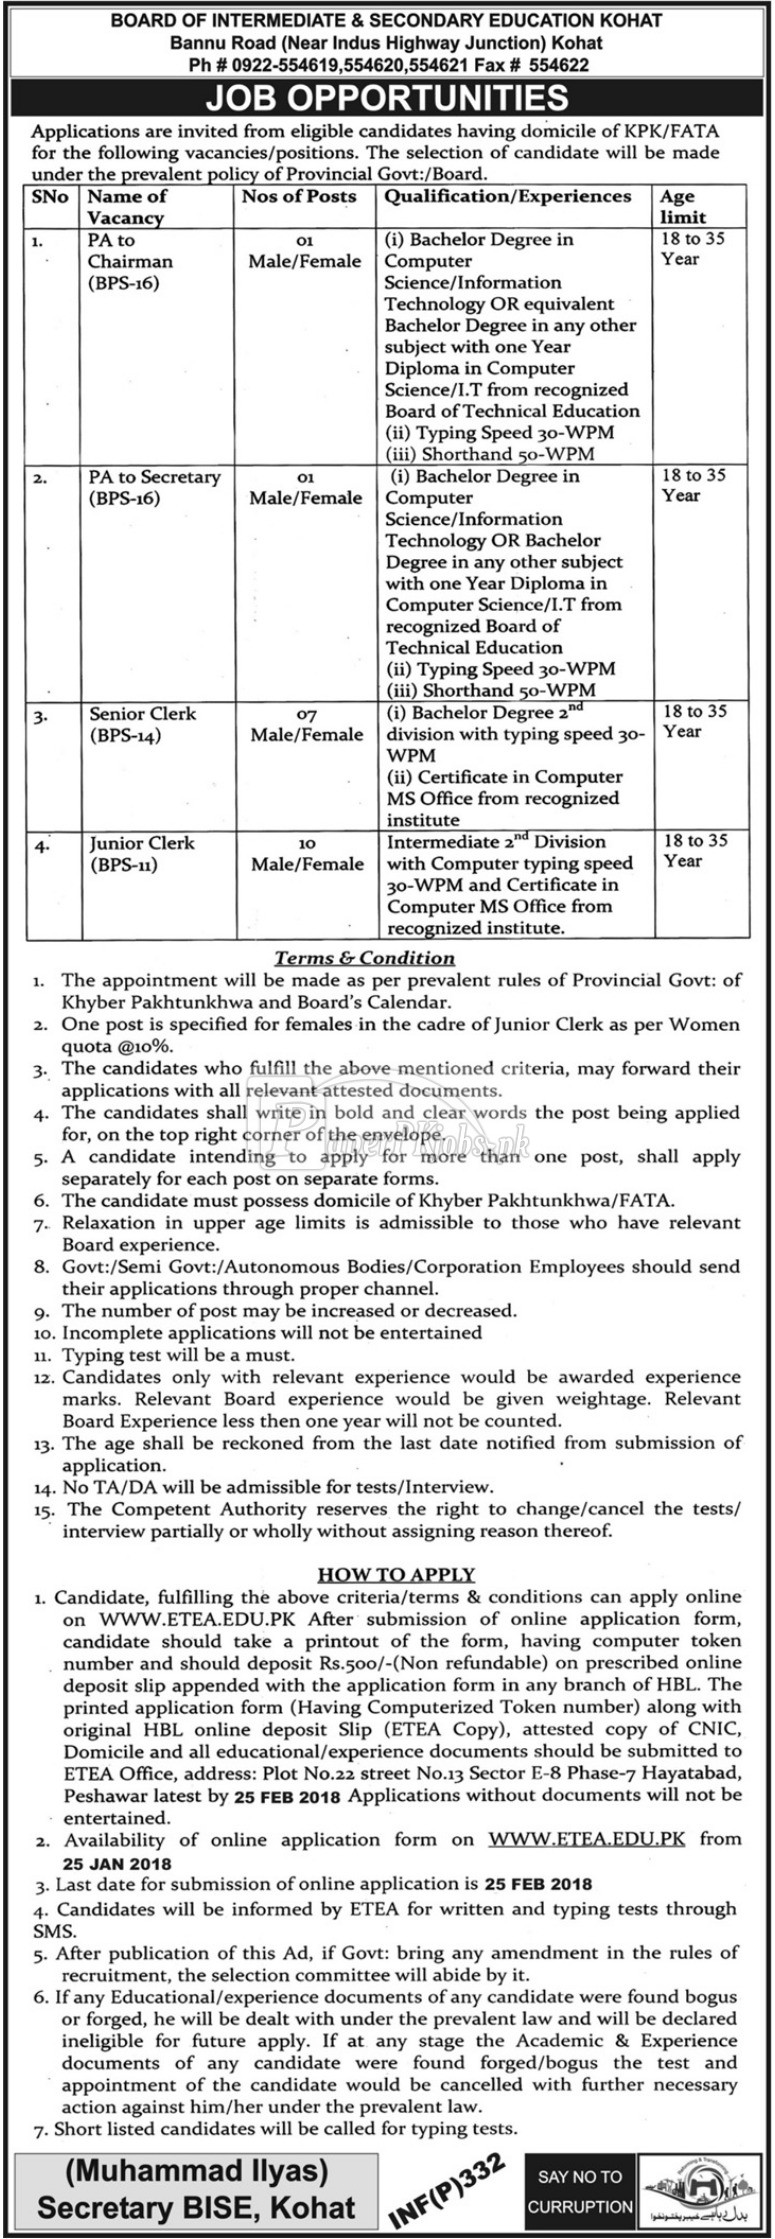 Board of Intermediate & Secondary Education BISE Kohat ETEA Jobs 2018